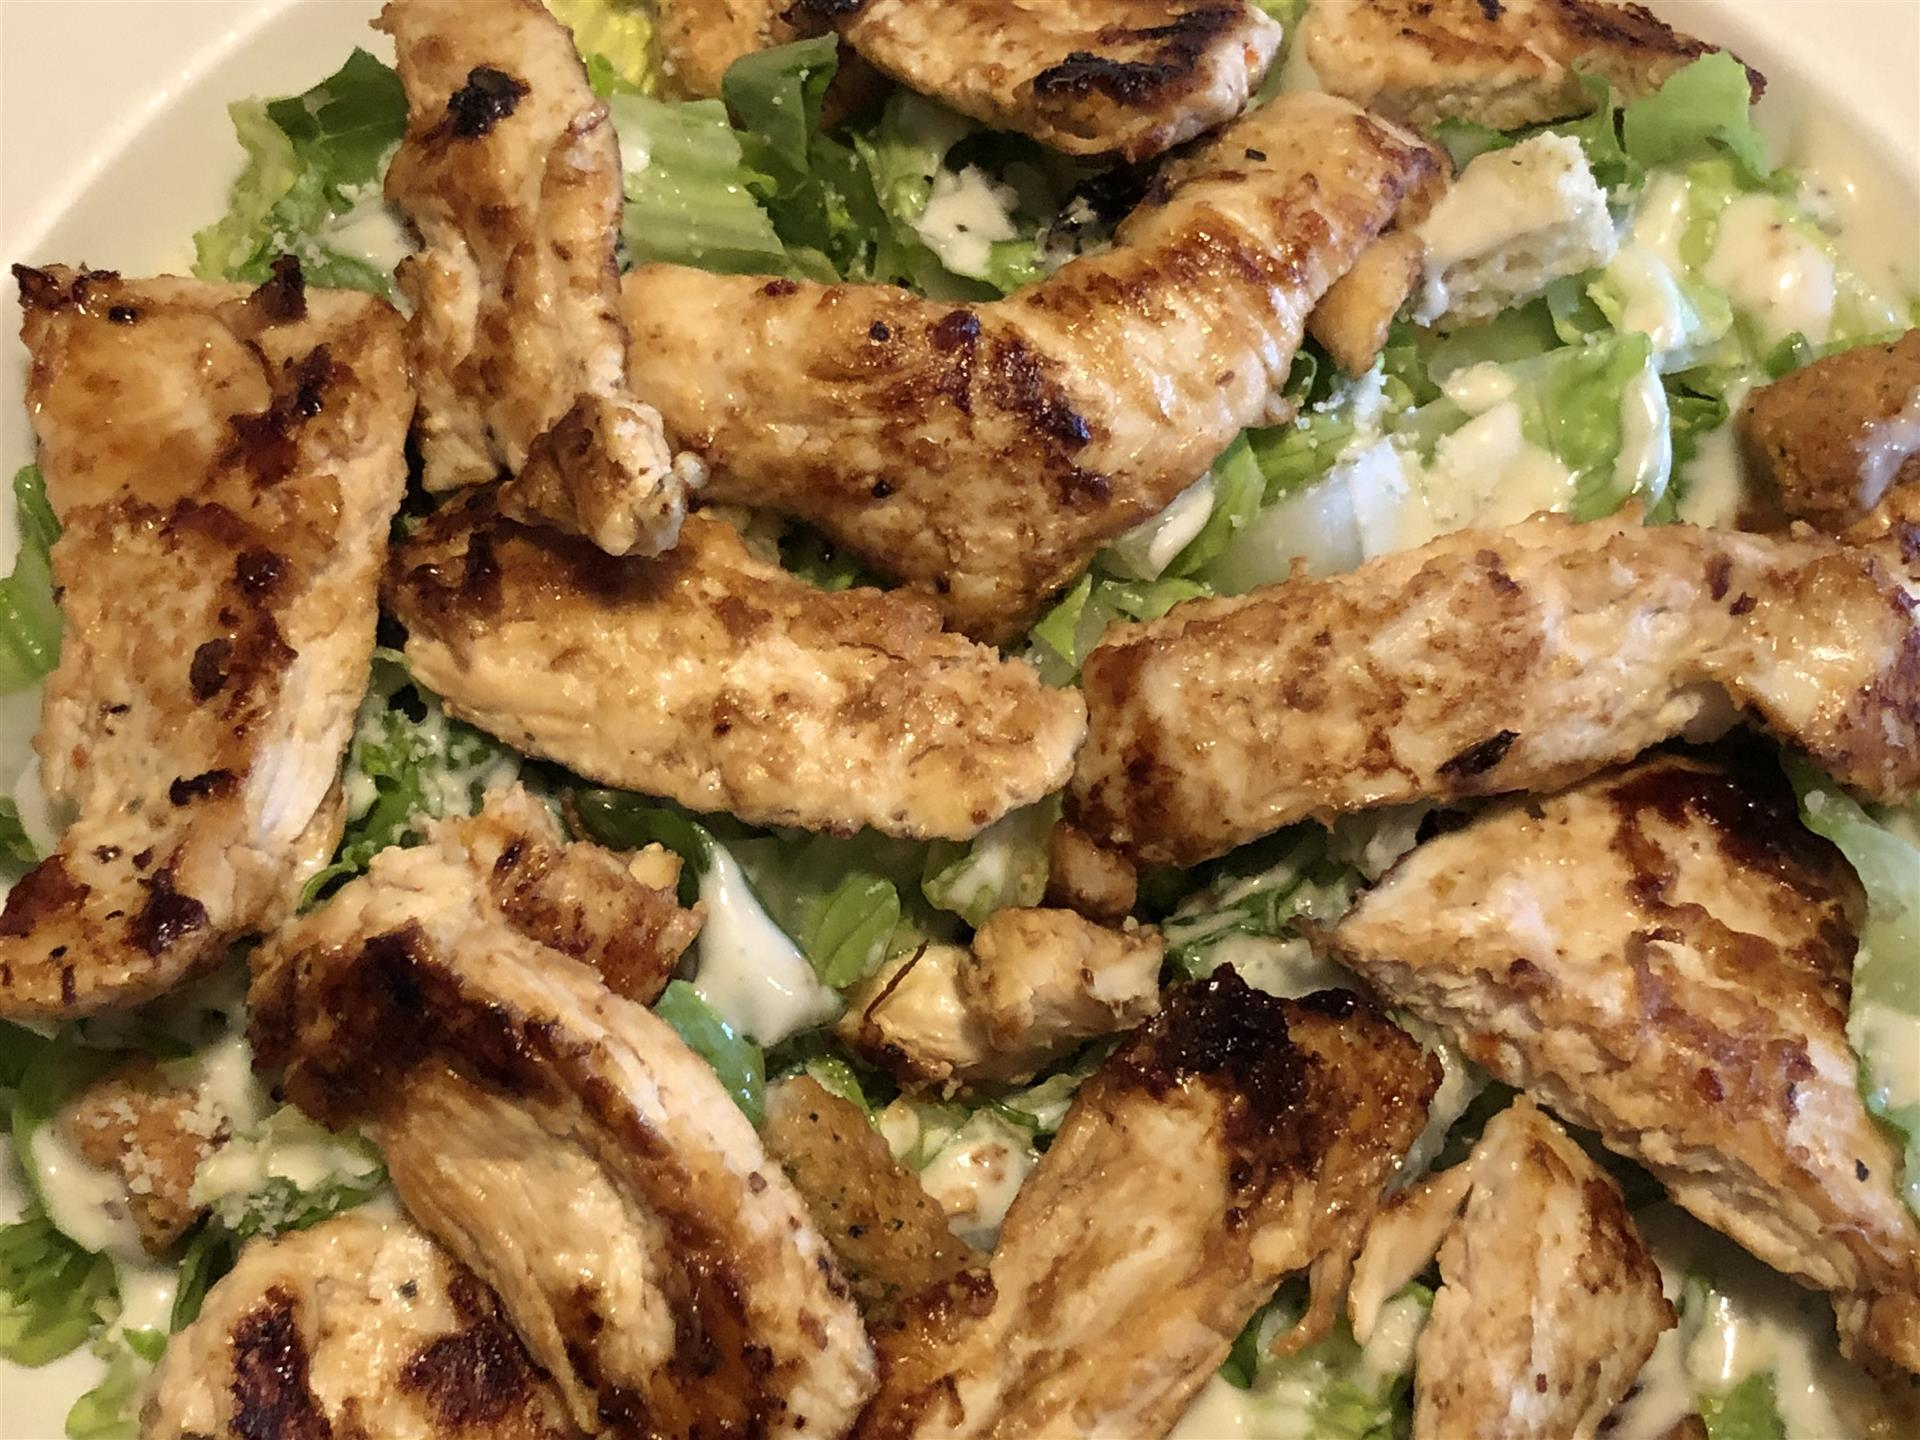 A close up of A grilled chicken cesar salad